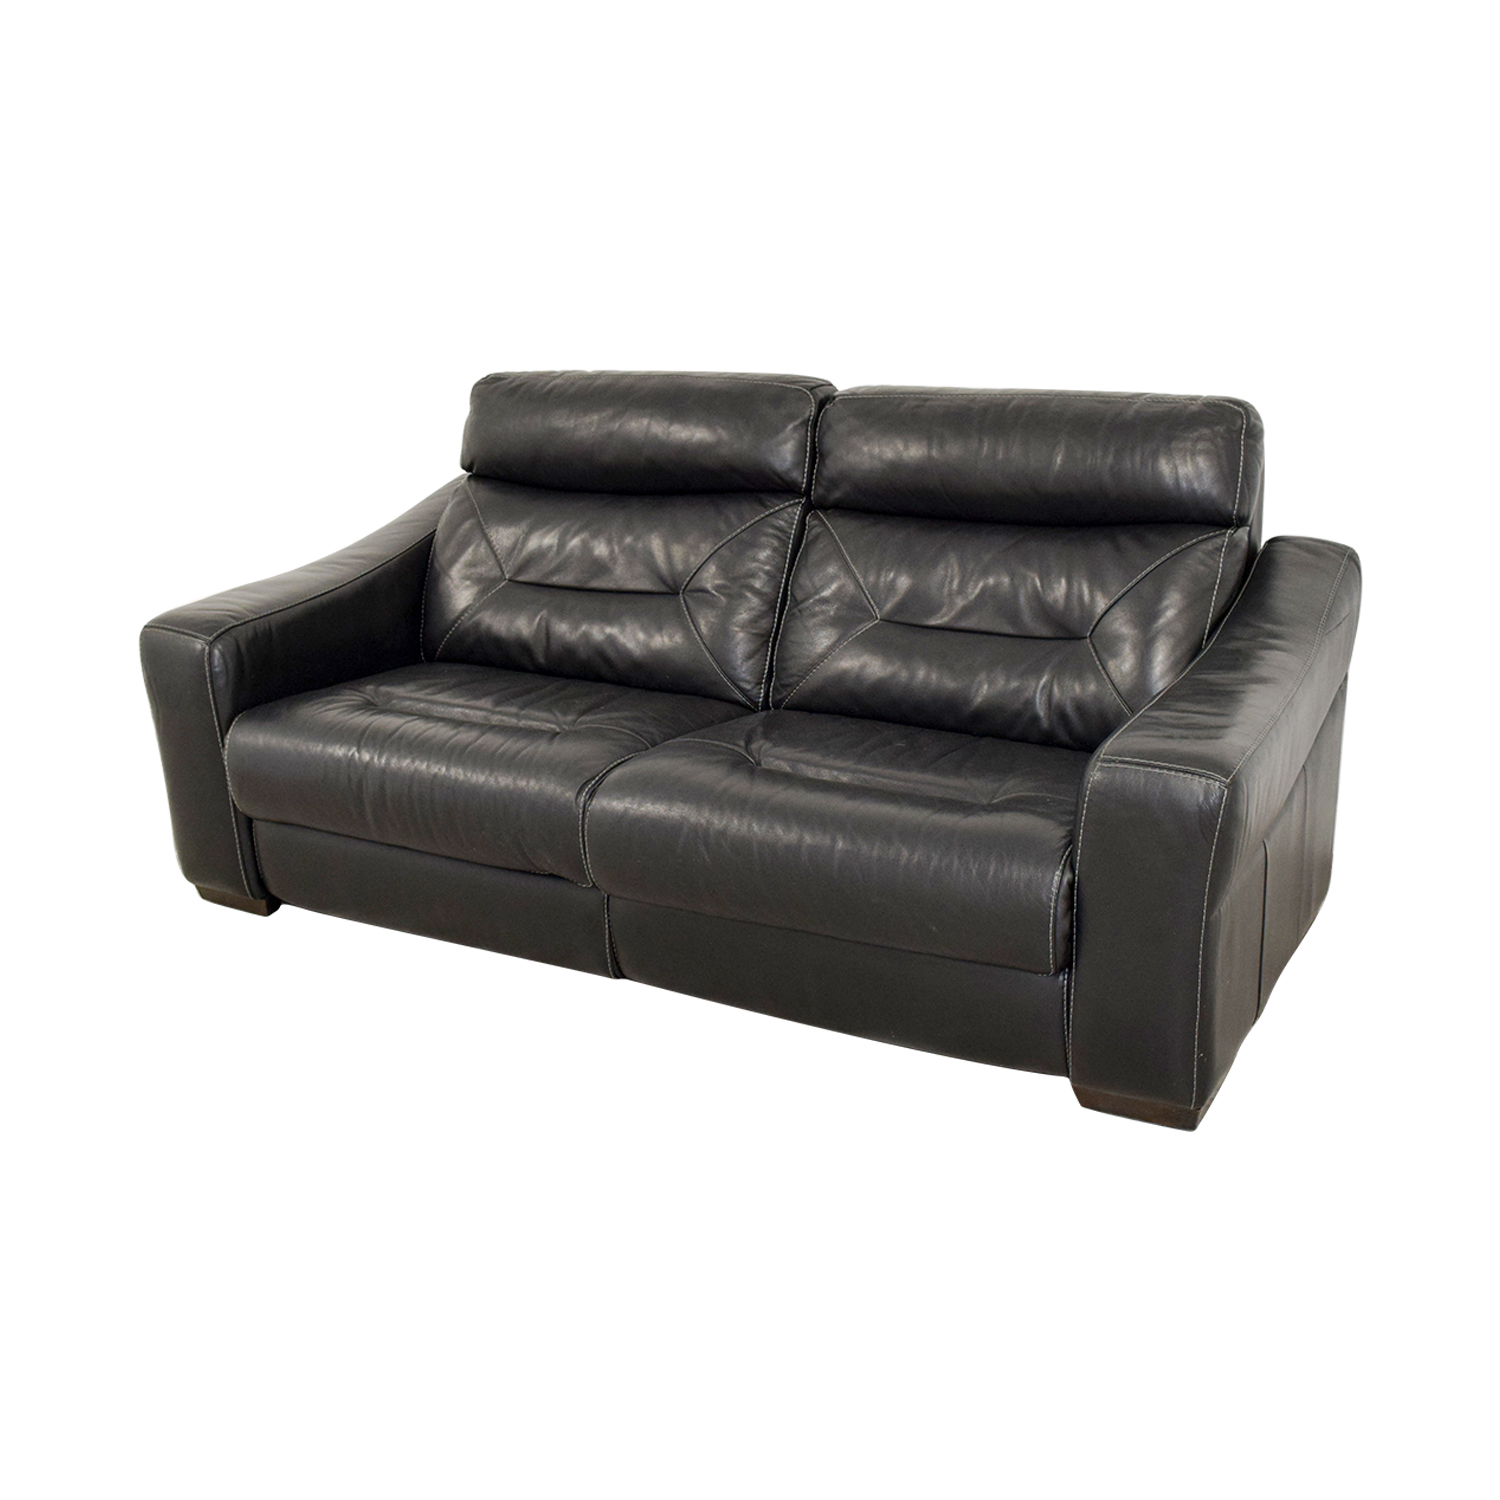 Furniture Chairs Black 54 Off Macy 39s Macy 39s Black Leather Recliner Sofa Chairs